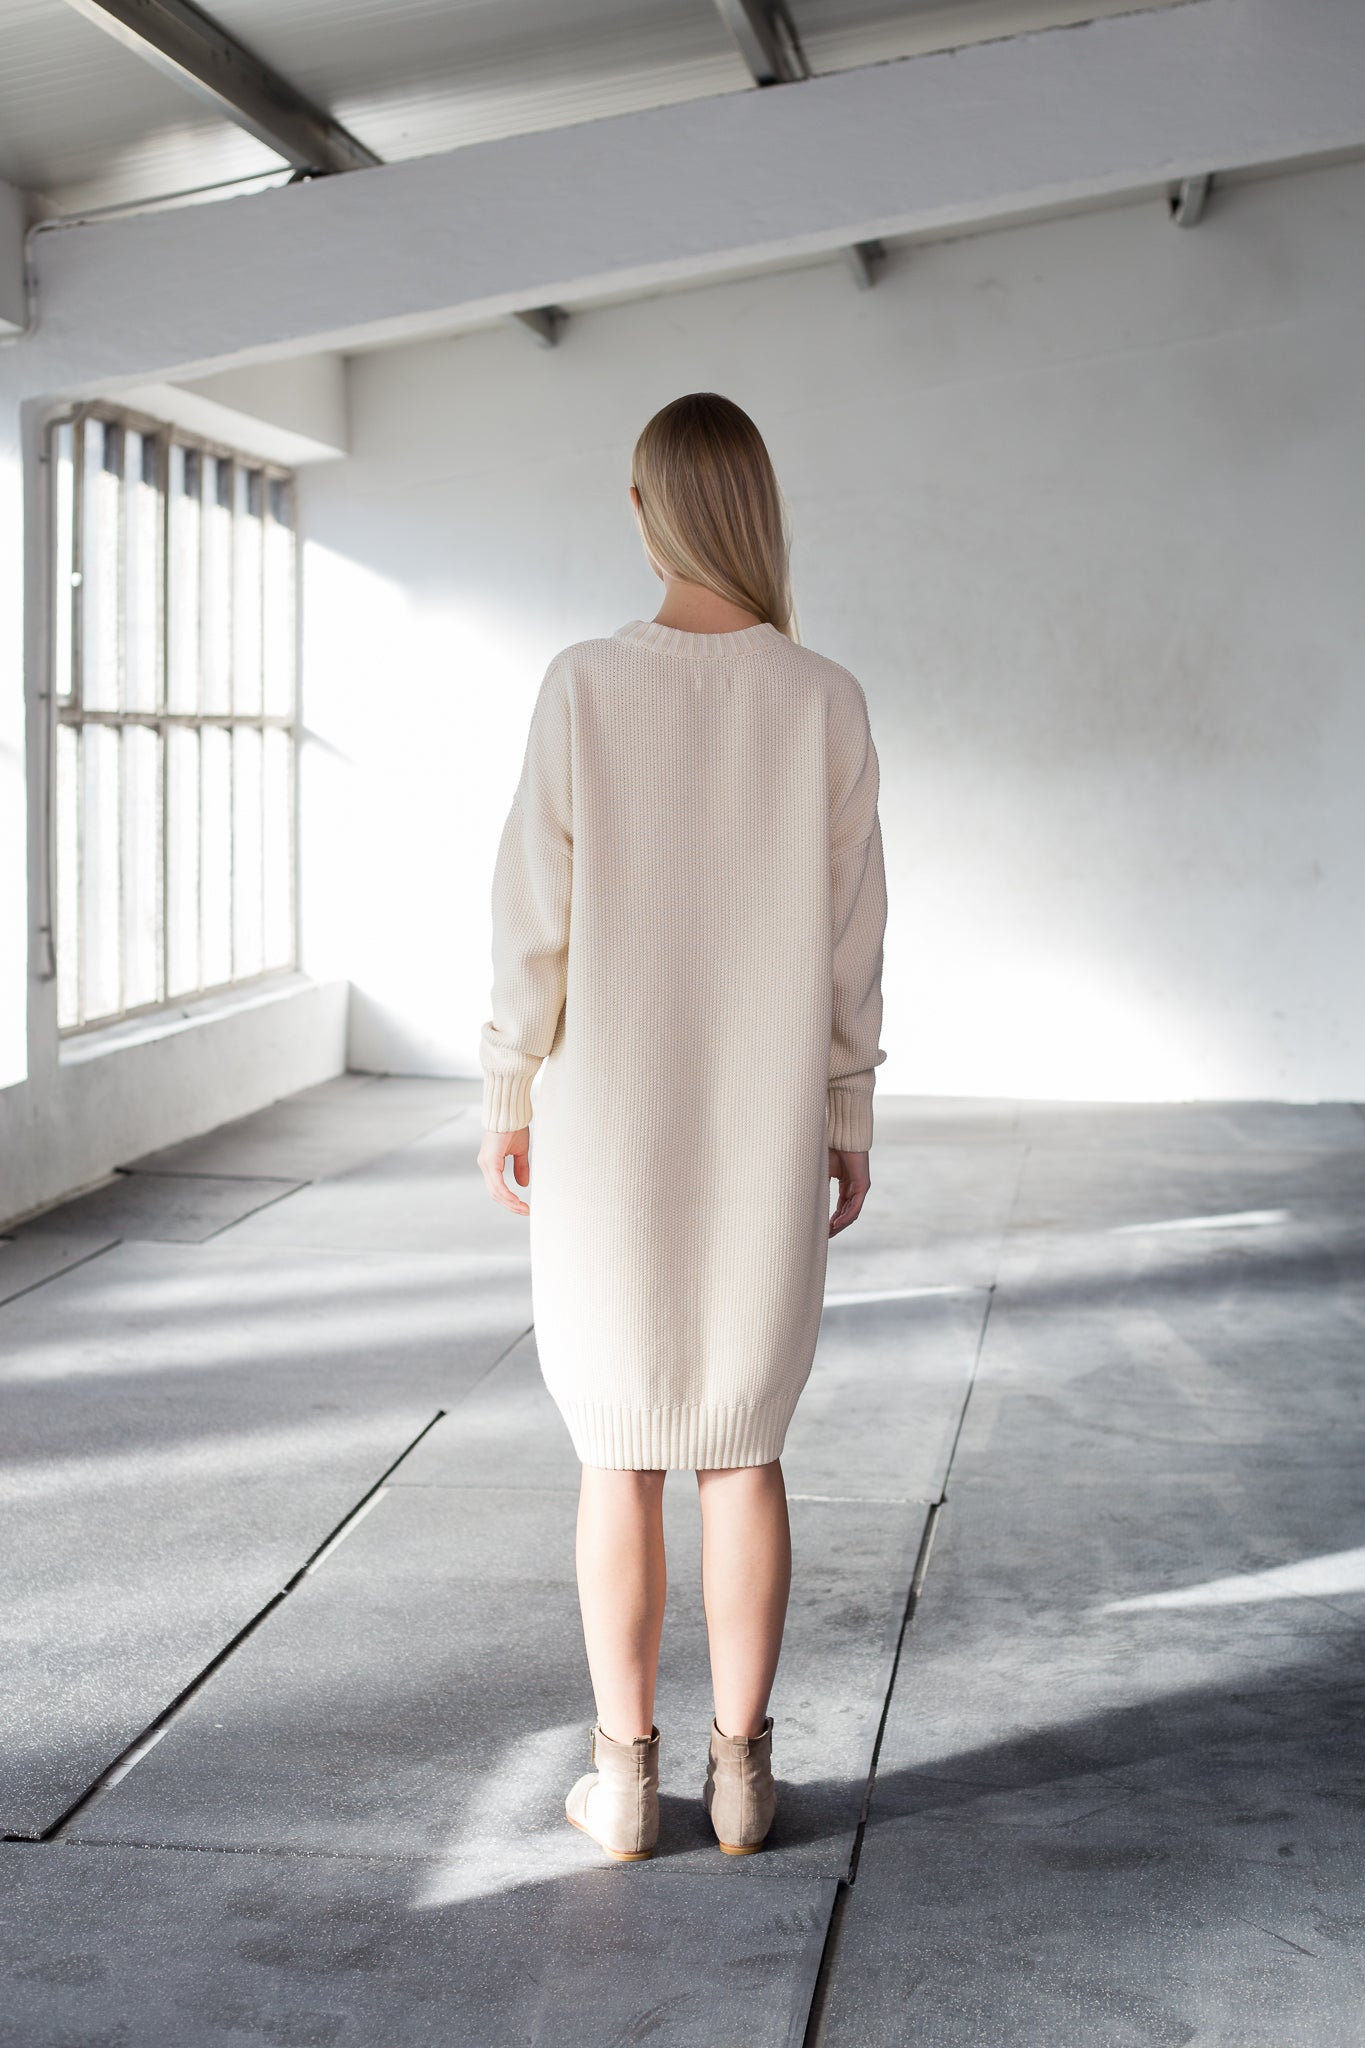 The model wears a natural, sustainable organic cotton knitted fine rice dress with low neck and knee lenght, back view.